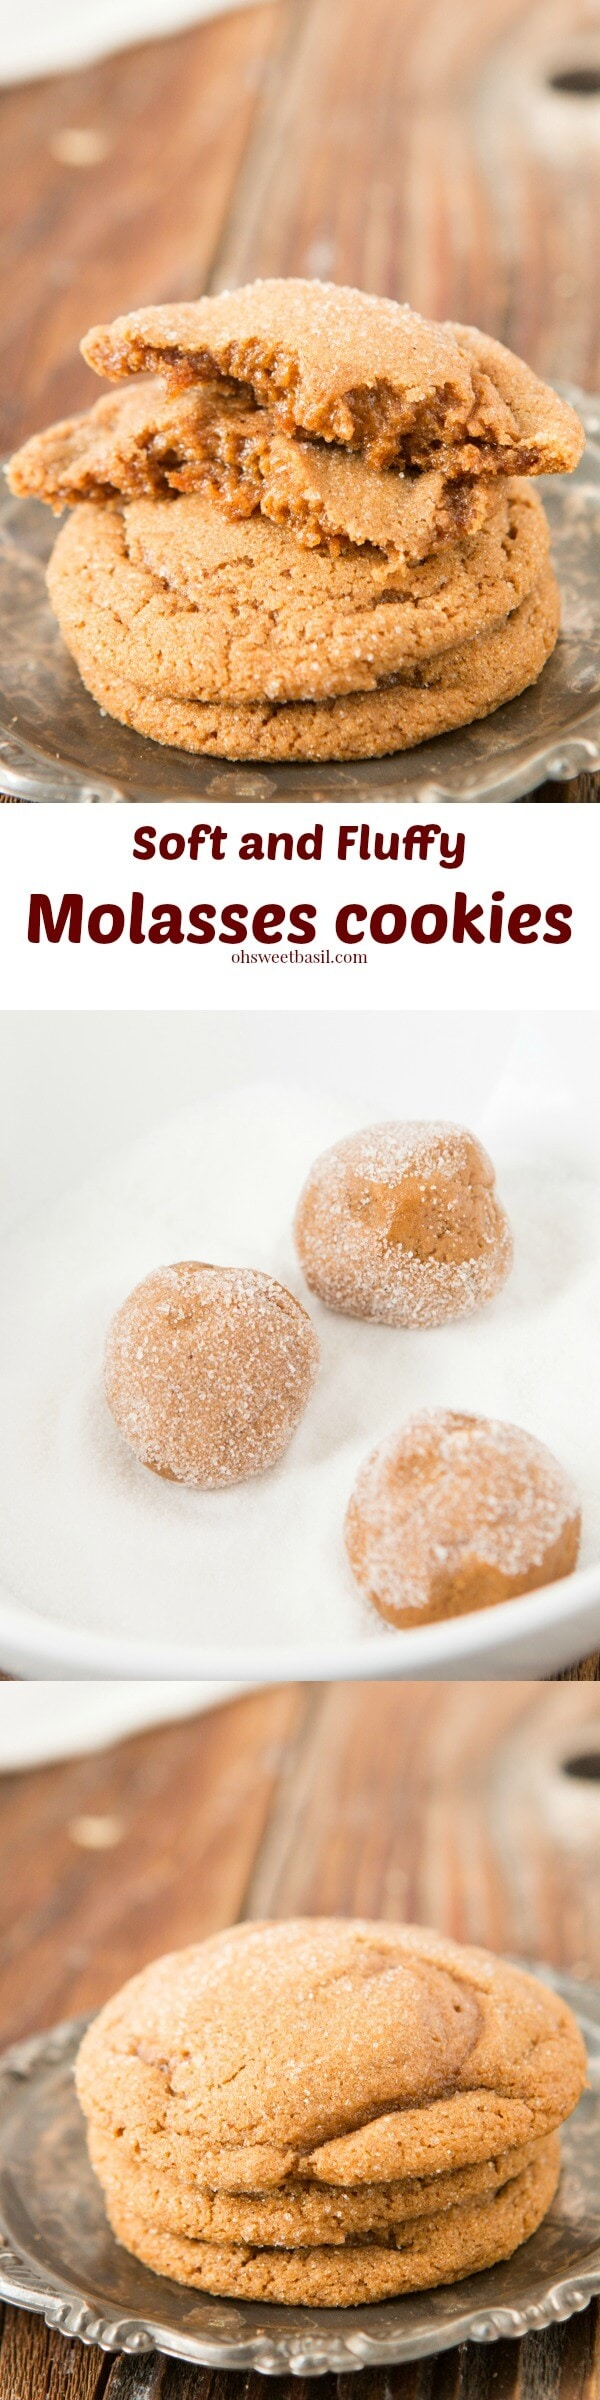 The #1 recipe for soft and fluffy molasses cookies ohsweetbasil.com